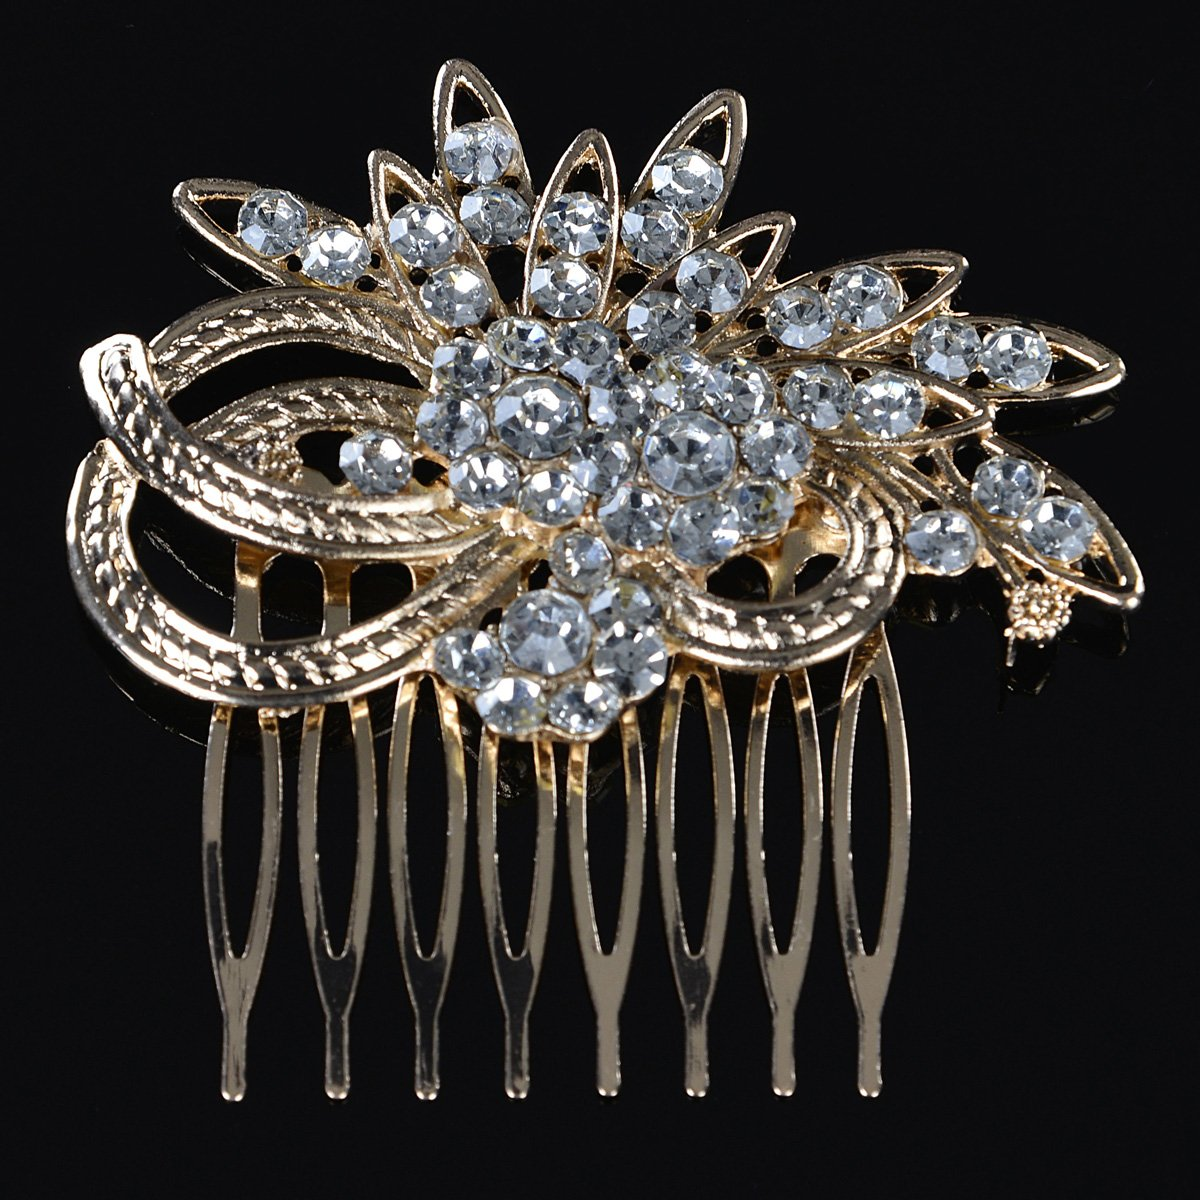 Remedios Vintage Crystal Bridal Hair Comb Wedding Hair Accessory, Light Gold 1